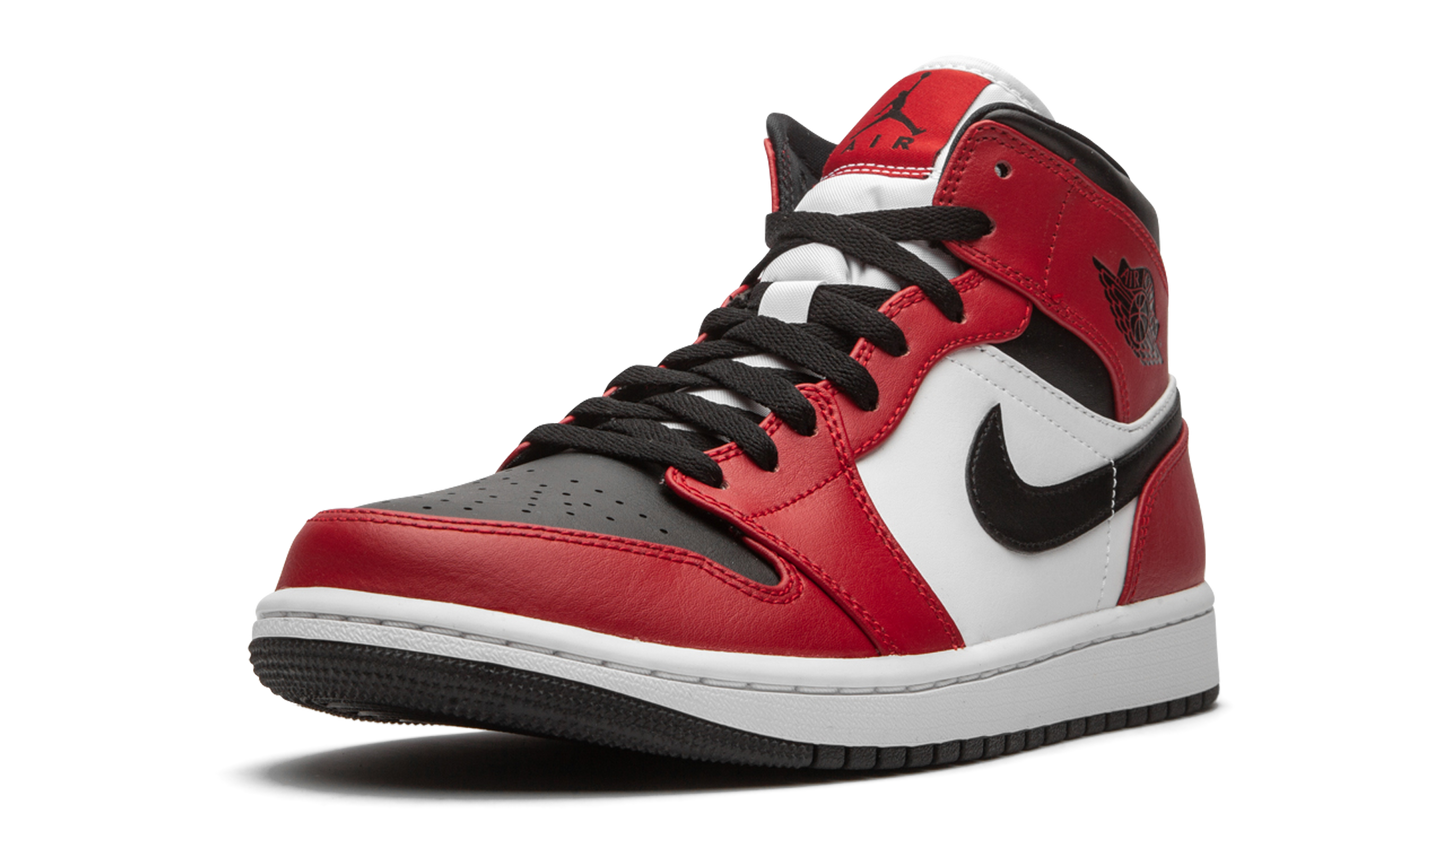 Jordan Air Jordan 1 'Chicago Black Toe' - Street Peek